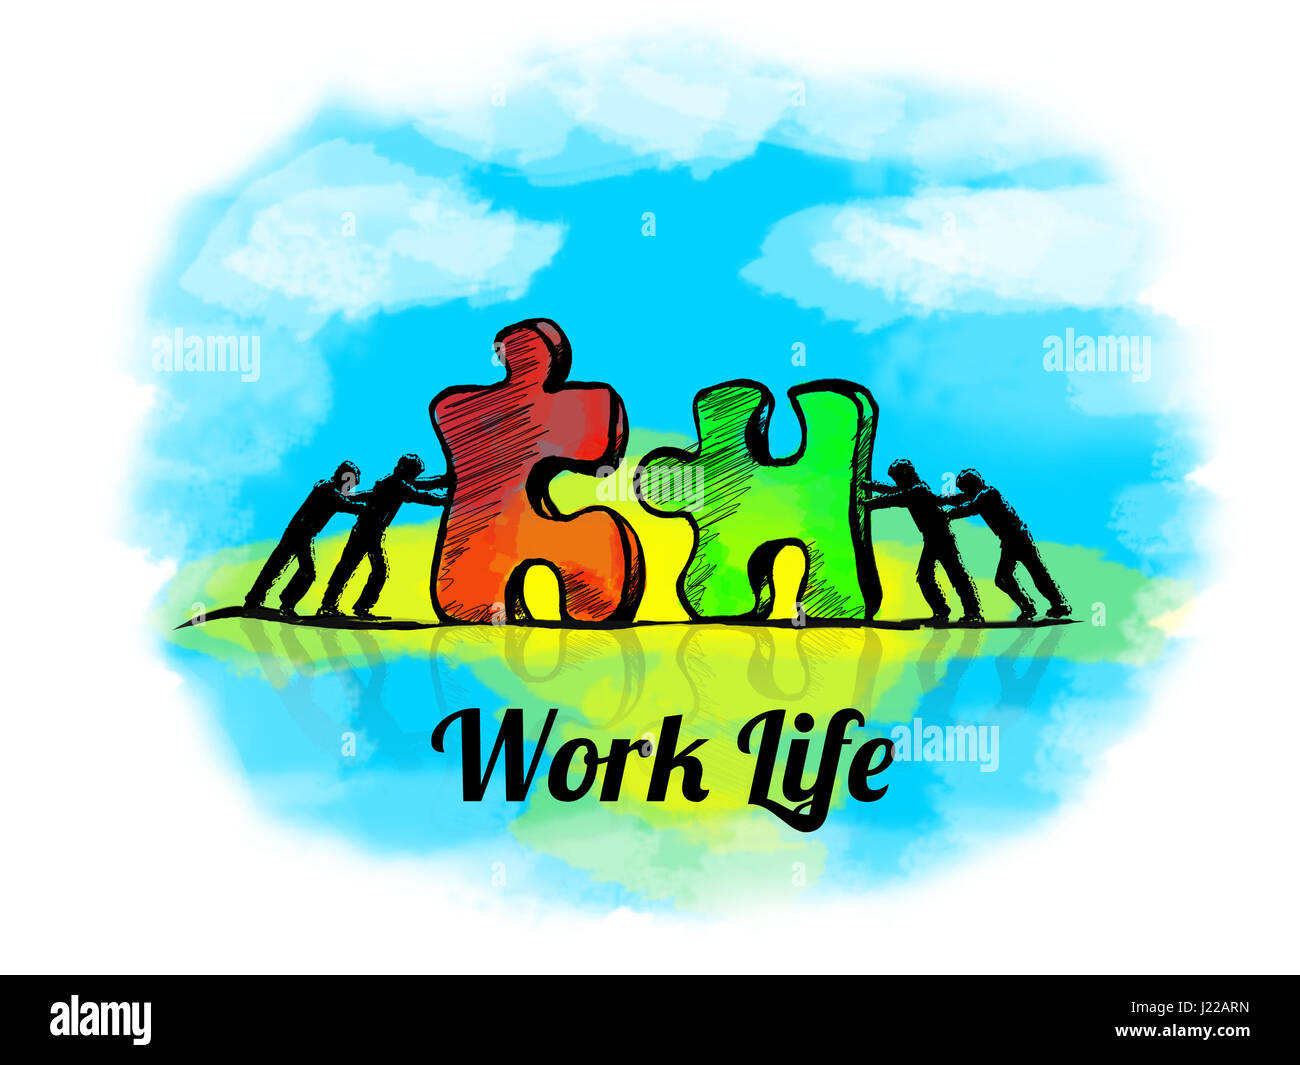 Illustration.Business concept of teamwork with jigsaw puzzle. Work Live - Stock Image